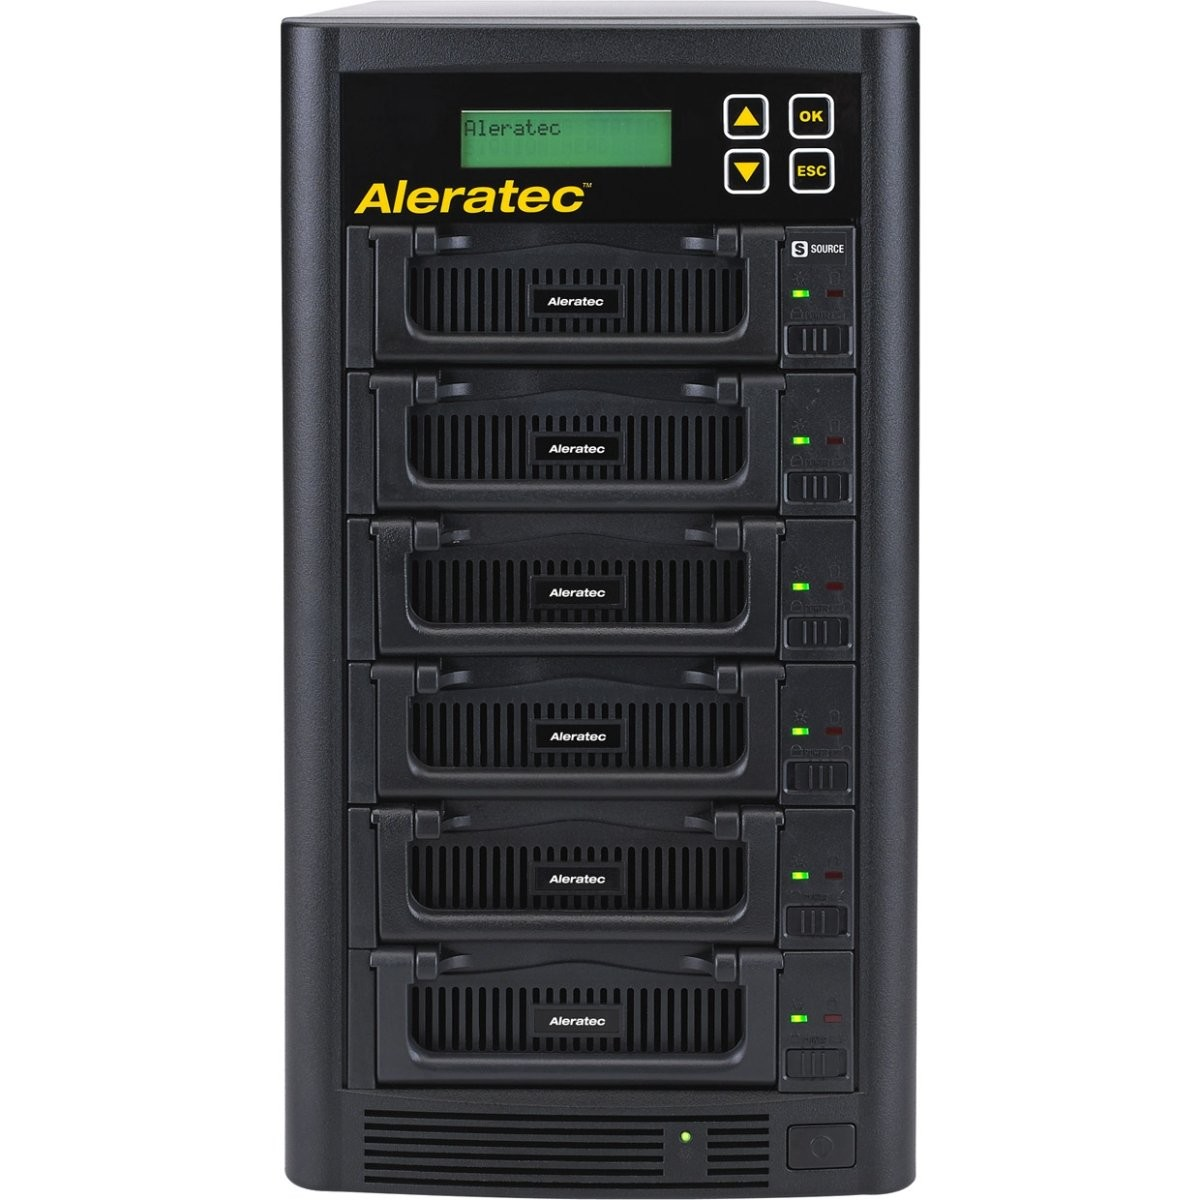 Aleratec 350130 1:5 HDD Copy Cruiser IDE/SATA High-Speed Duplicator